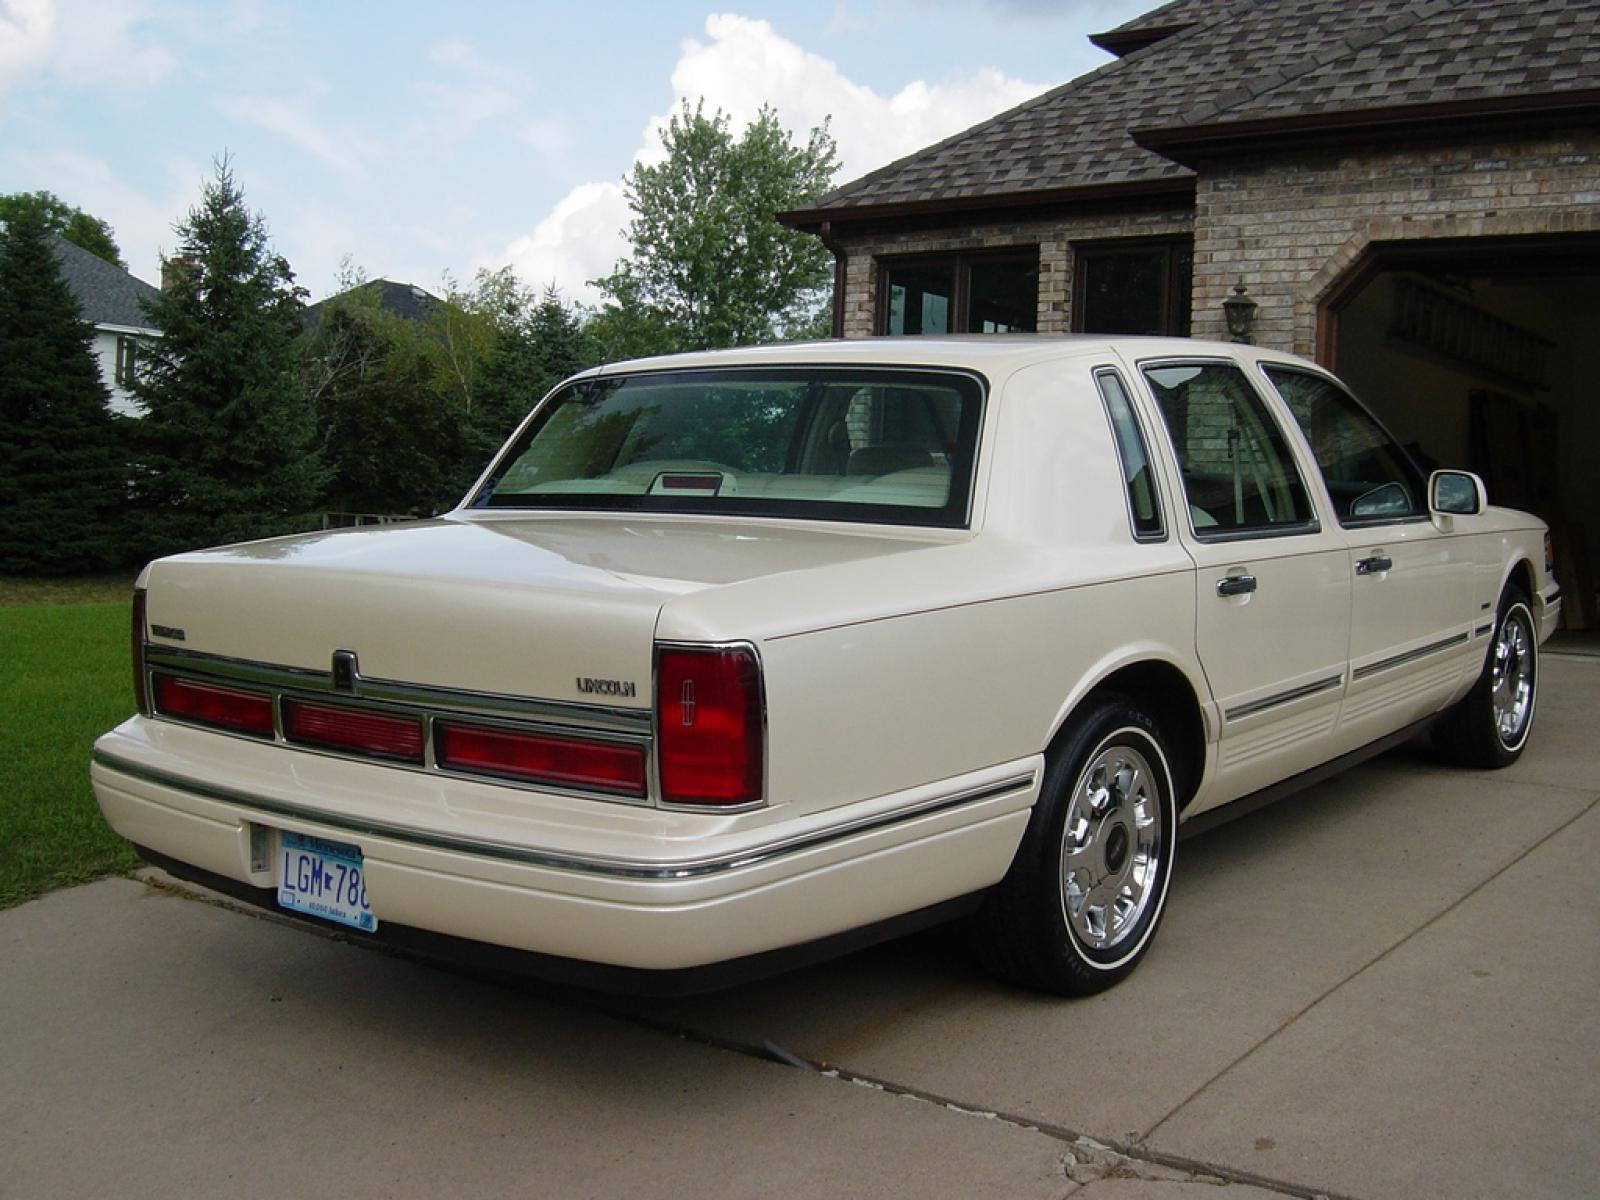 1997 Lincoln Town Car 12 800 1024 1280 1600 Origin